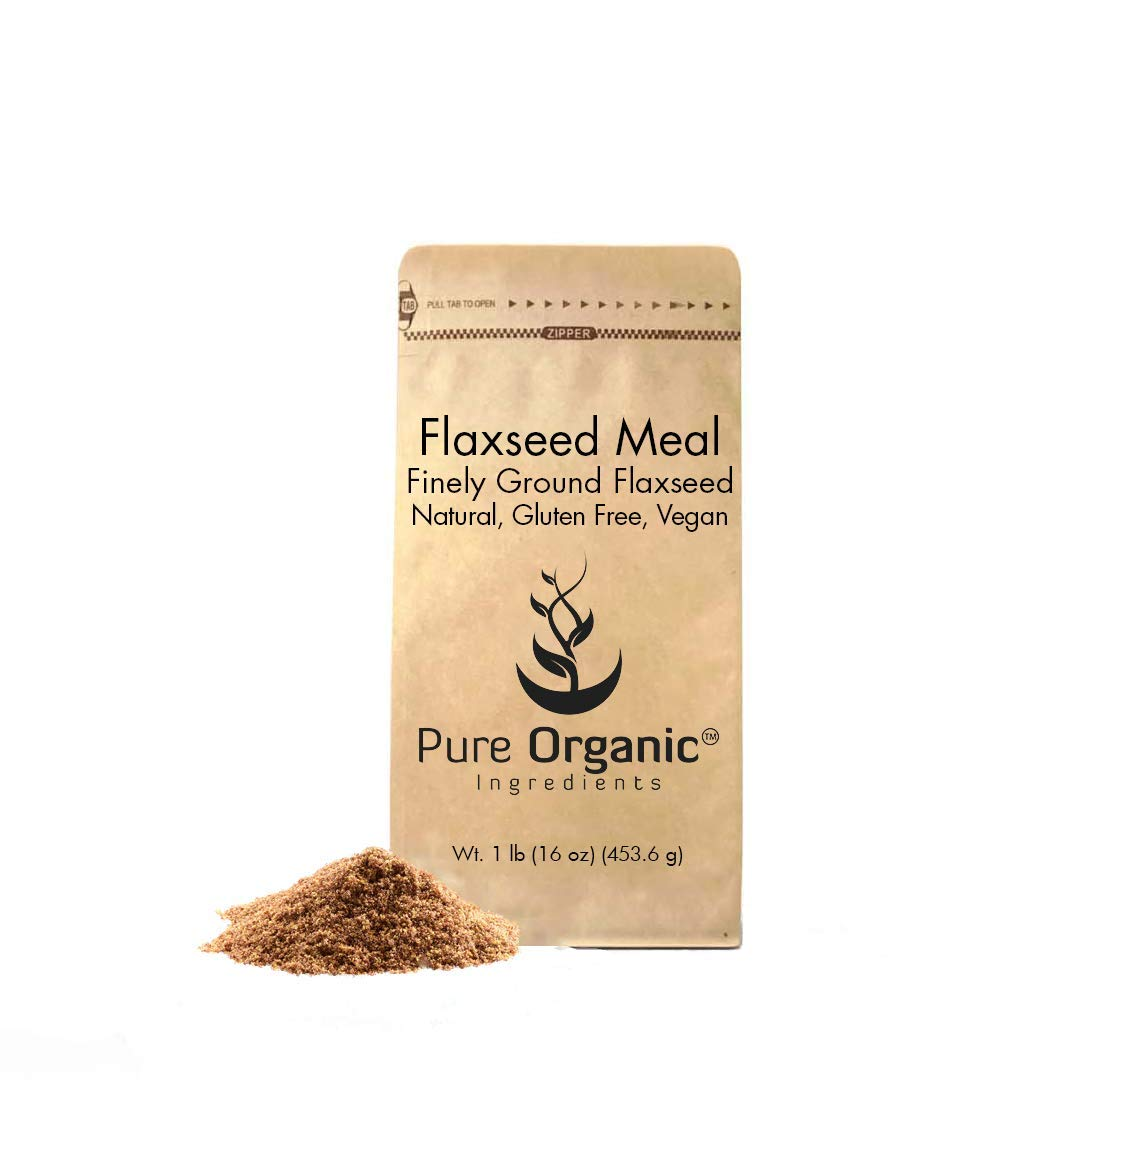 Flaxseed Meal (1 lb) by Pure Organic Ingredients, Vegan Egg Replacement, Nutritional Boost, Thickening & Binding Agent Used in Cooking/Baking, Eco-Friendly Packaging